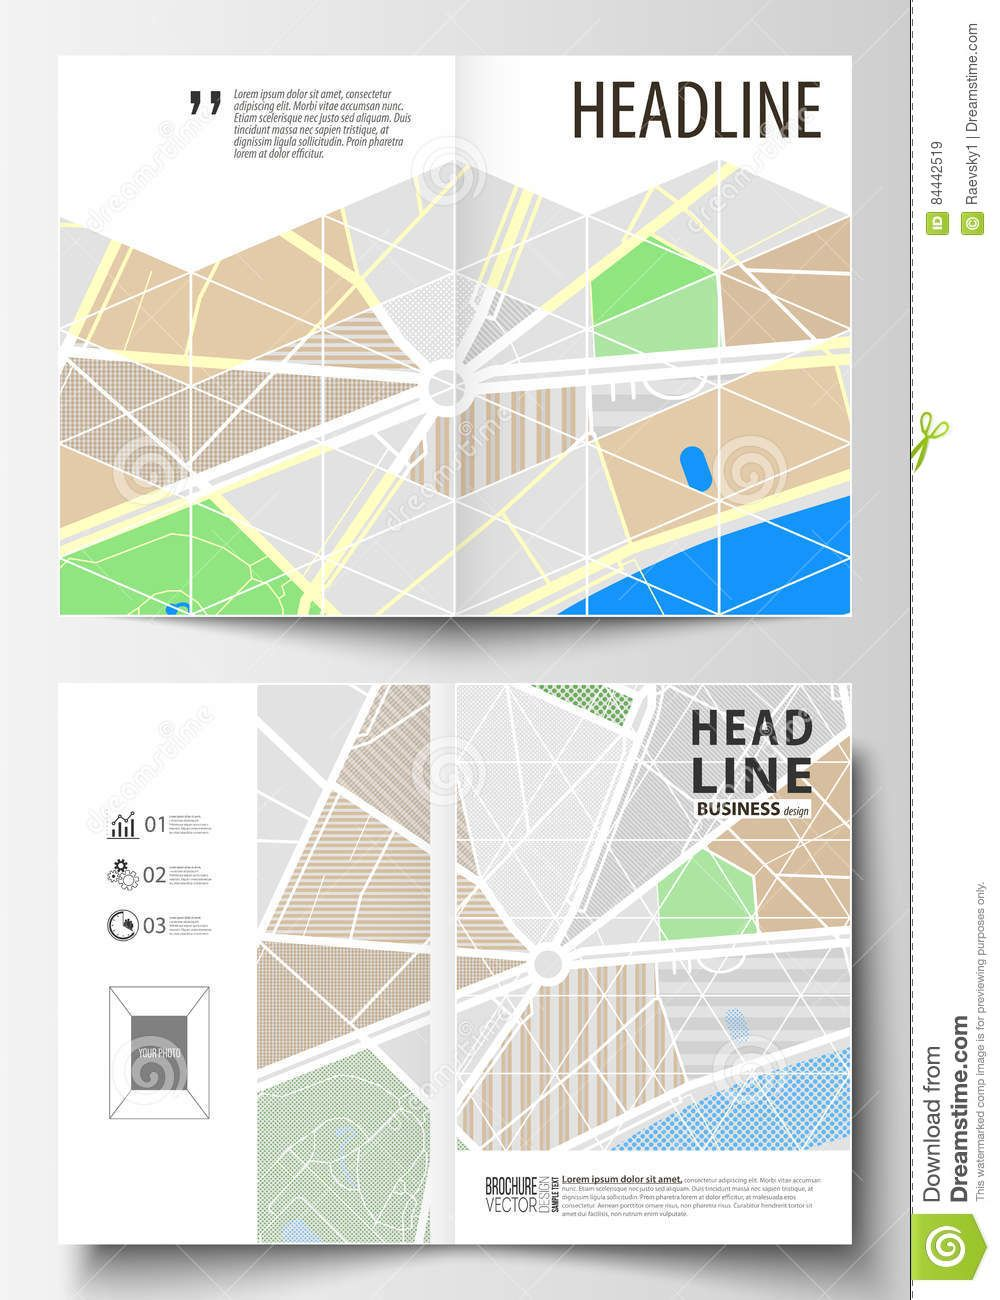 Business Templates For Bi Fold Brochure Magazine Flyer Or Intended For Blank City Map Template Bi Fold Brochure Business Template Brochure Design Template